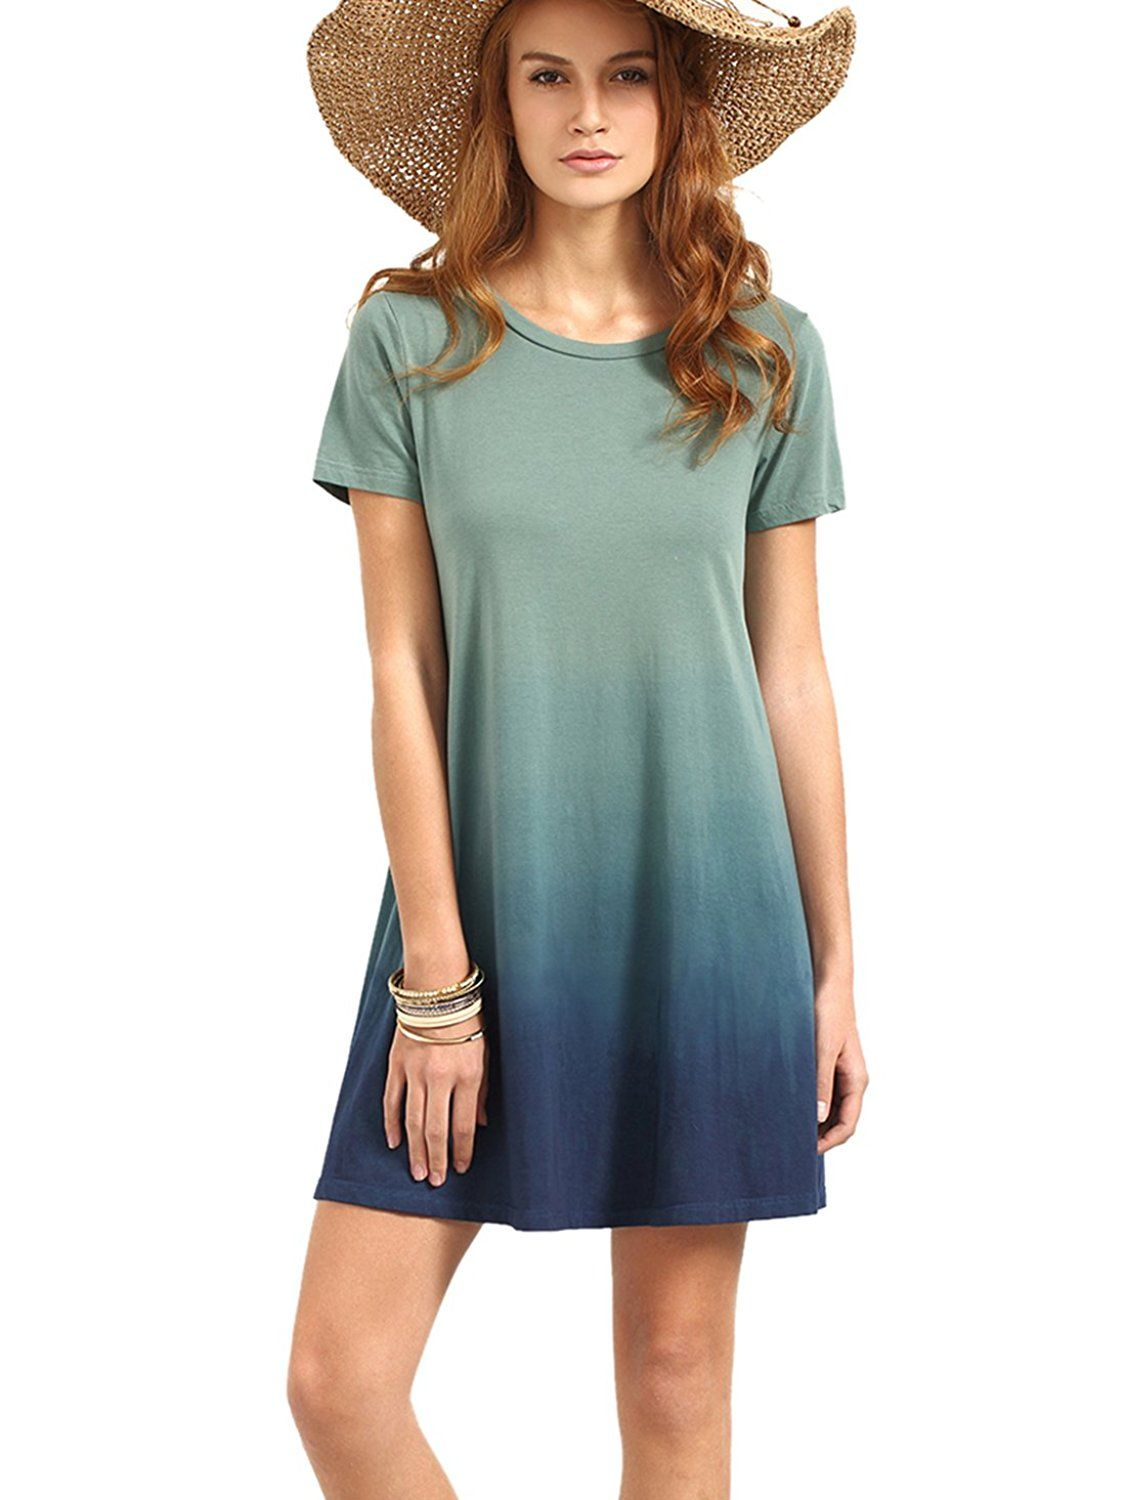 6d0ff14170284 ROMWE Women's Tunic Swing T-Shirt Dress Short Sleeve Tie Dye Ombre Dress at Amazon  Women's Clothing store: